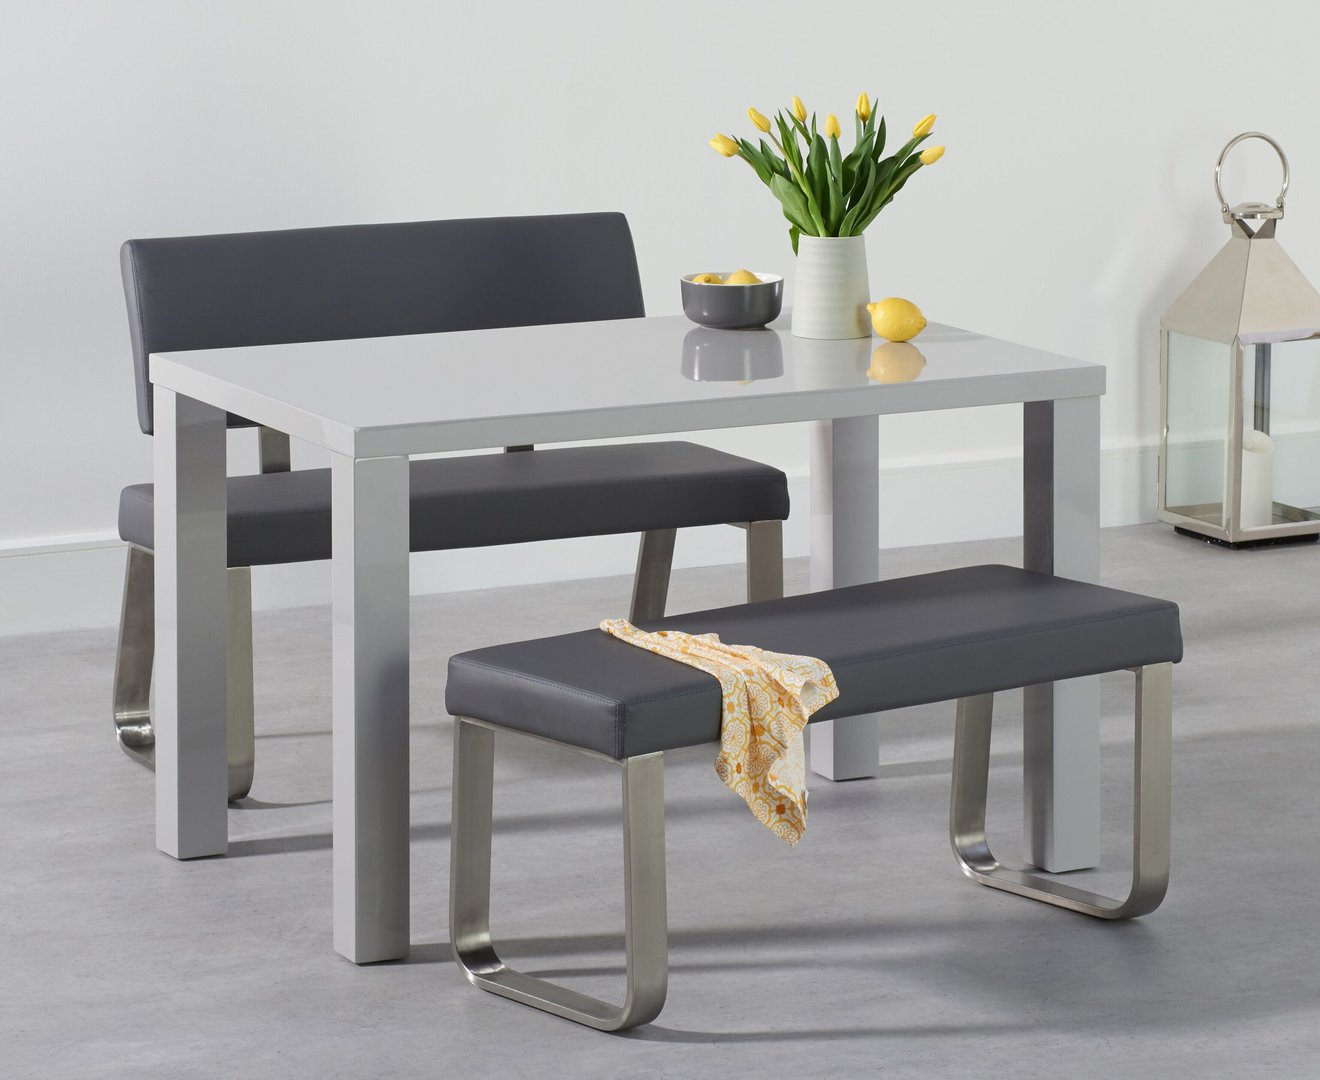 Brilliant Light Grey 4 Seater High Gloss Dining Bench Set Alphanode Cool Chair Designs And Ideas Alphanodeonline